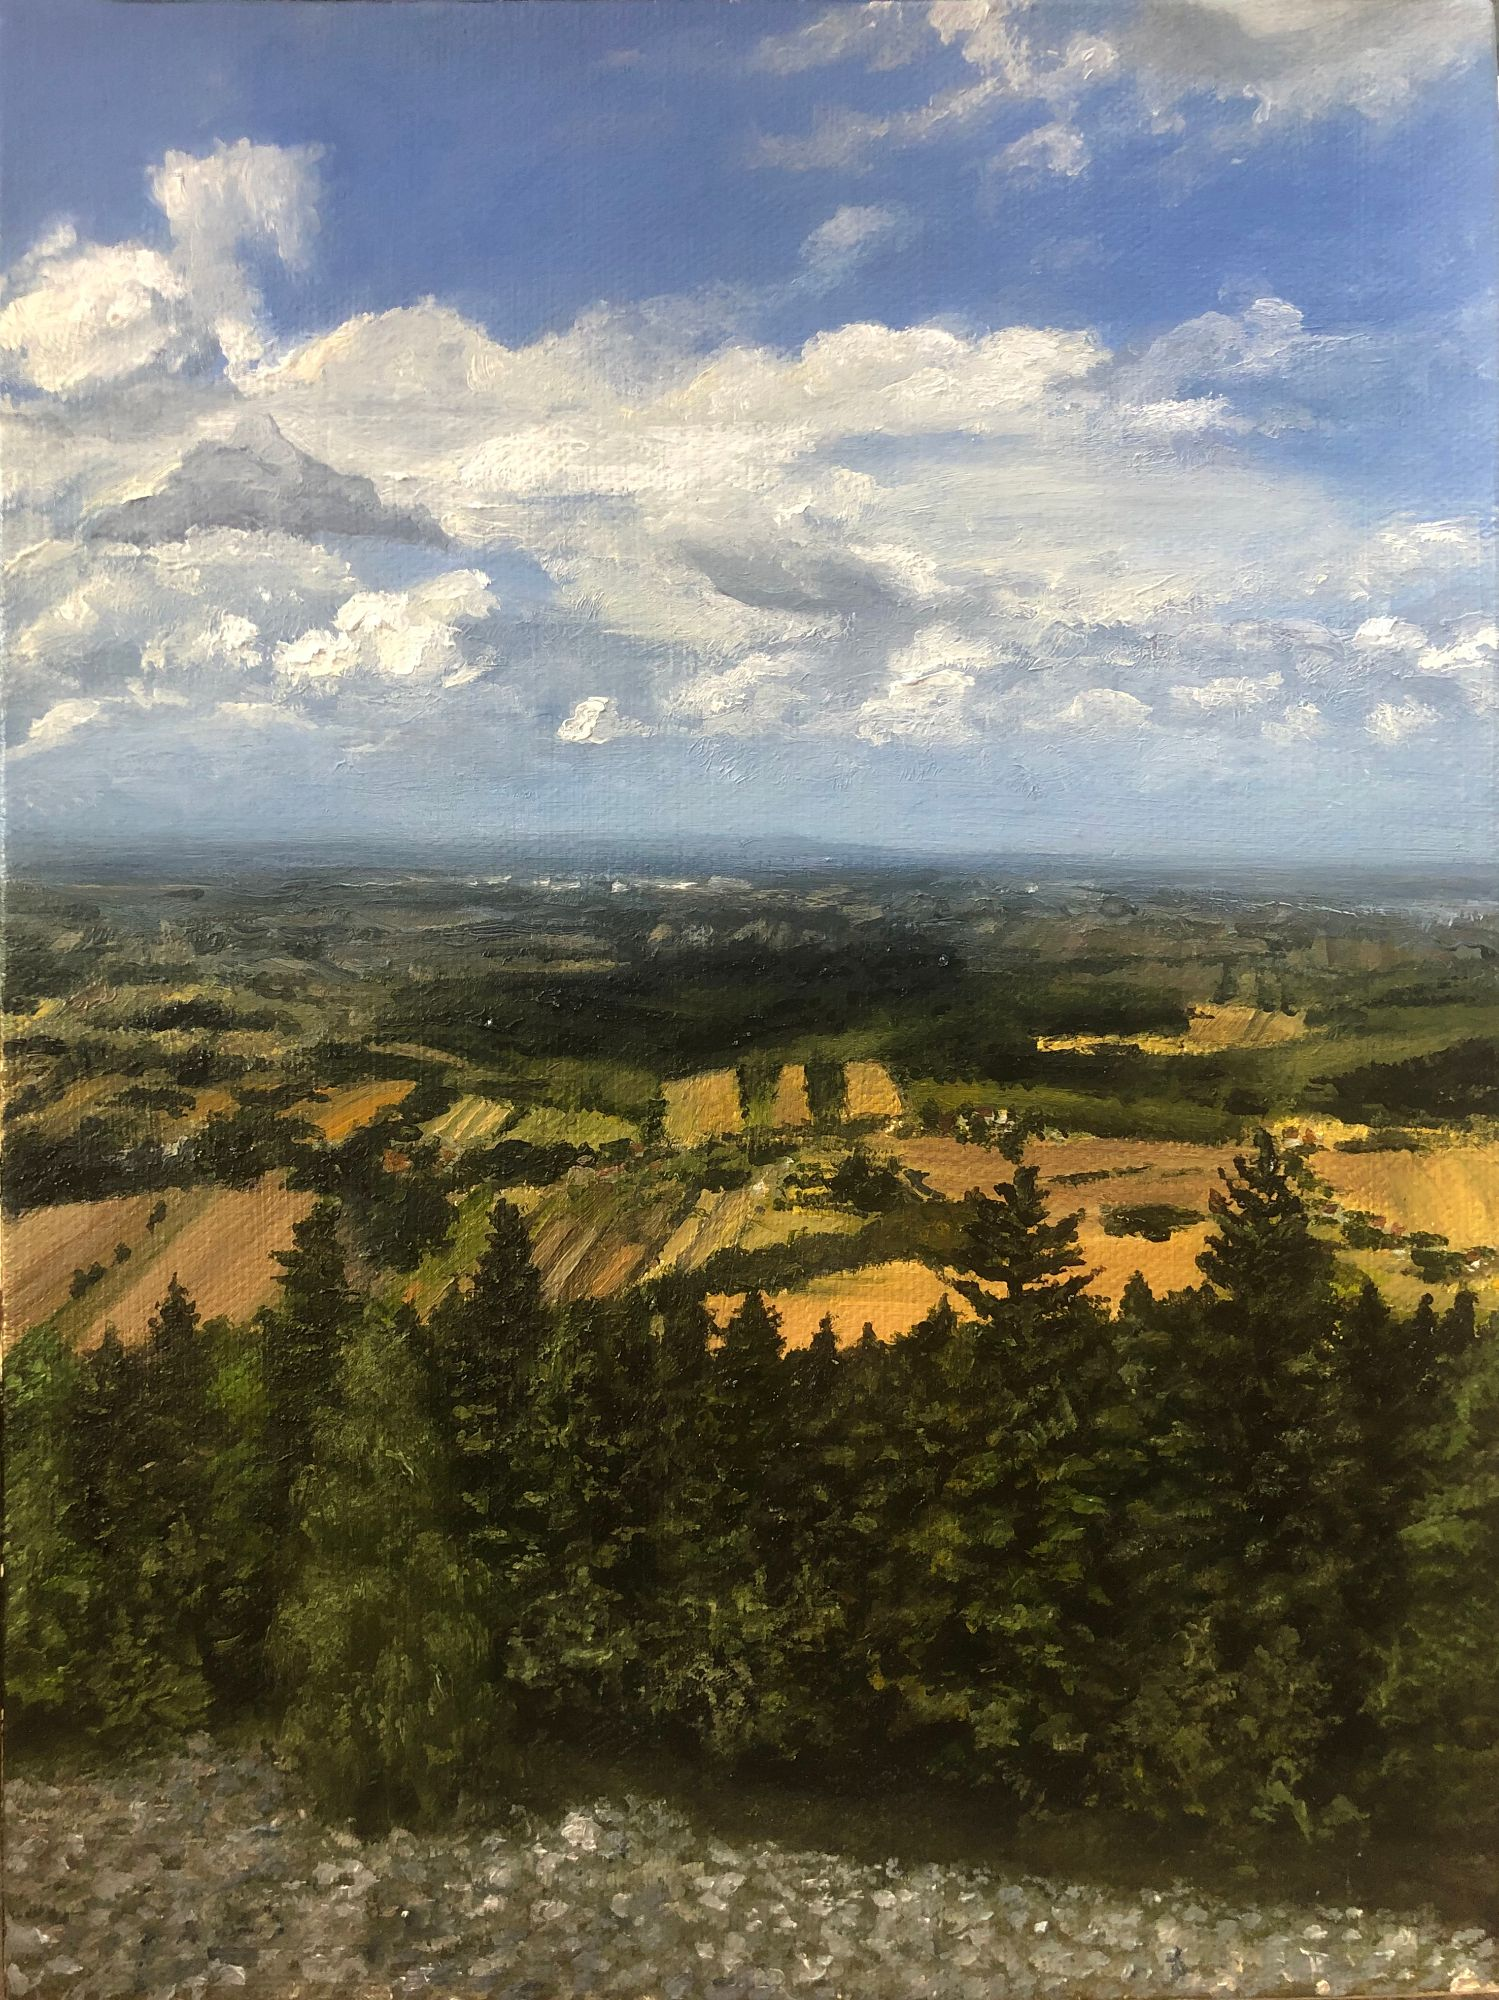 View from the Bald Mountains, Poland